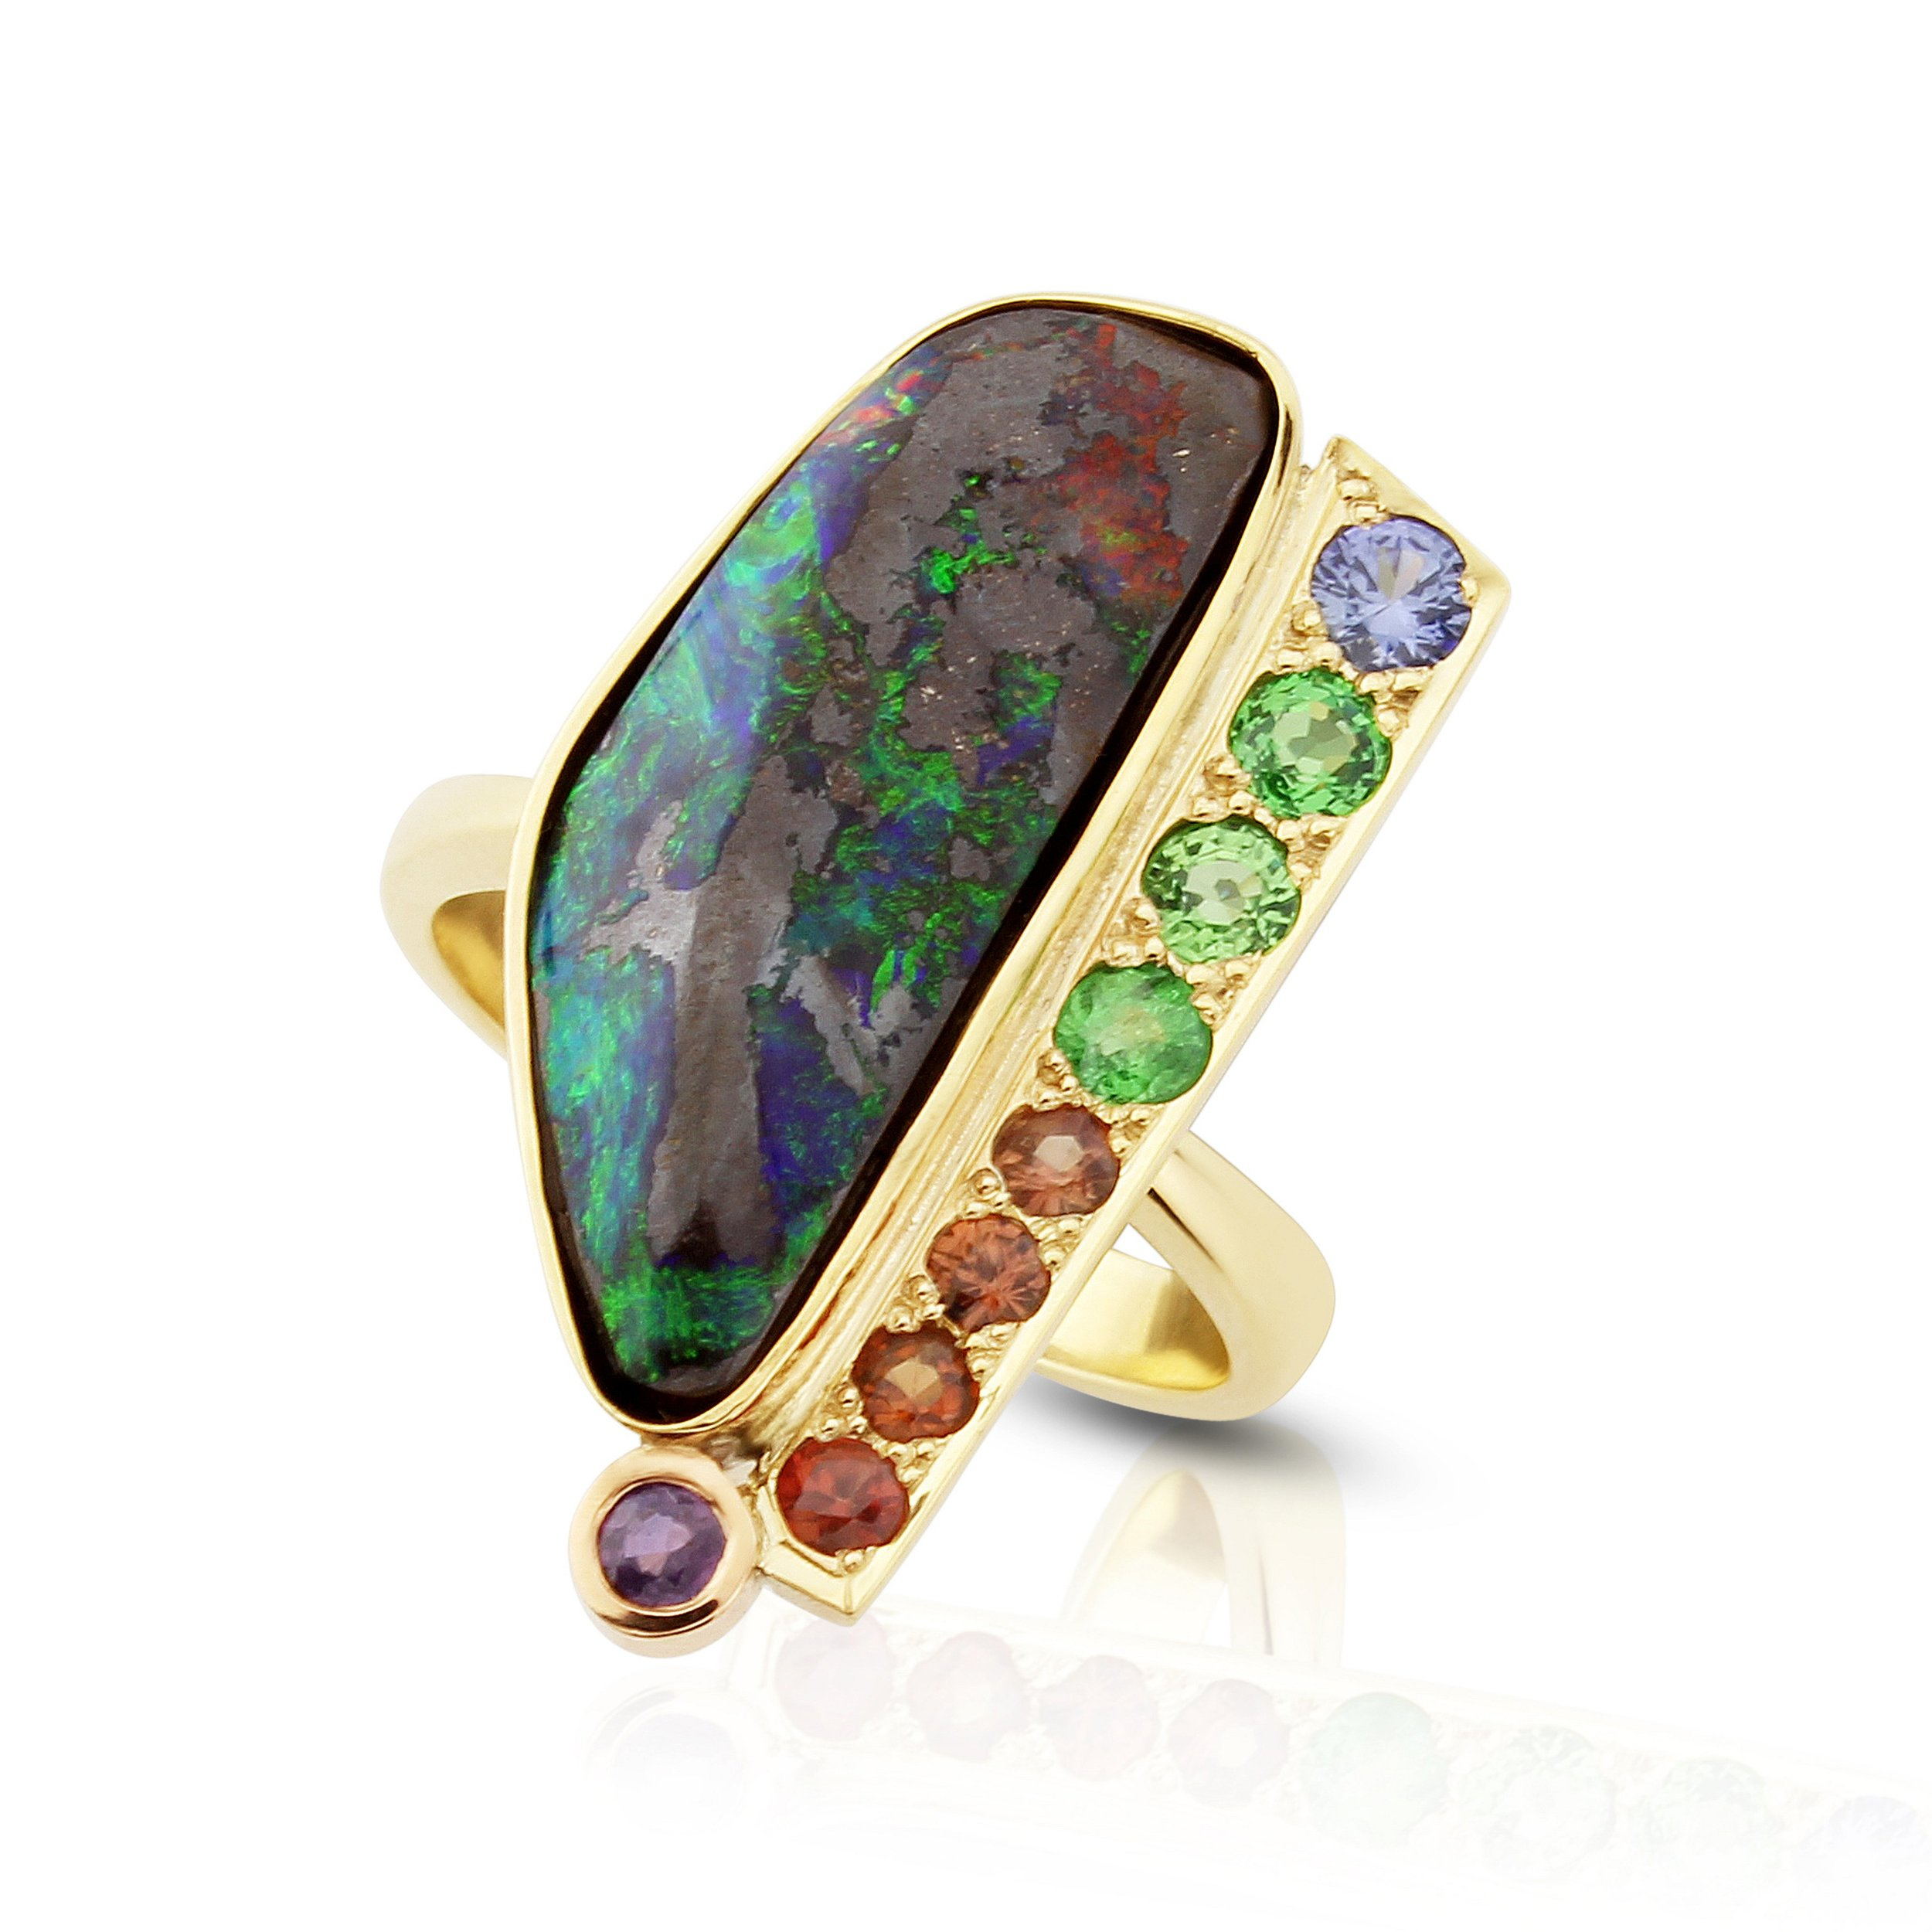 Rainbow of sapphires with tsavorite garnet,and Australian boulder opal in yellow gold.